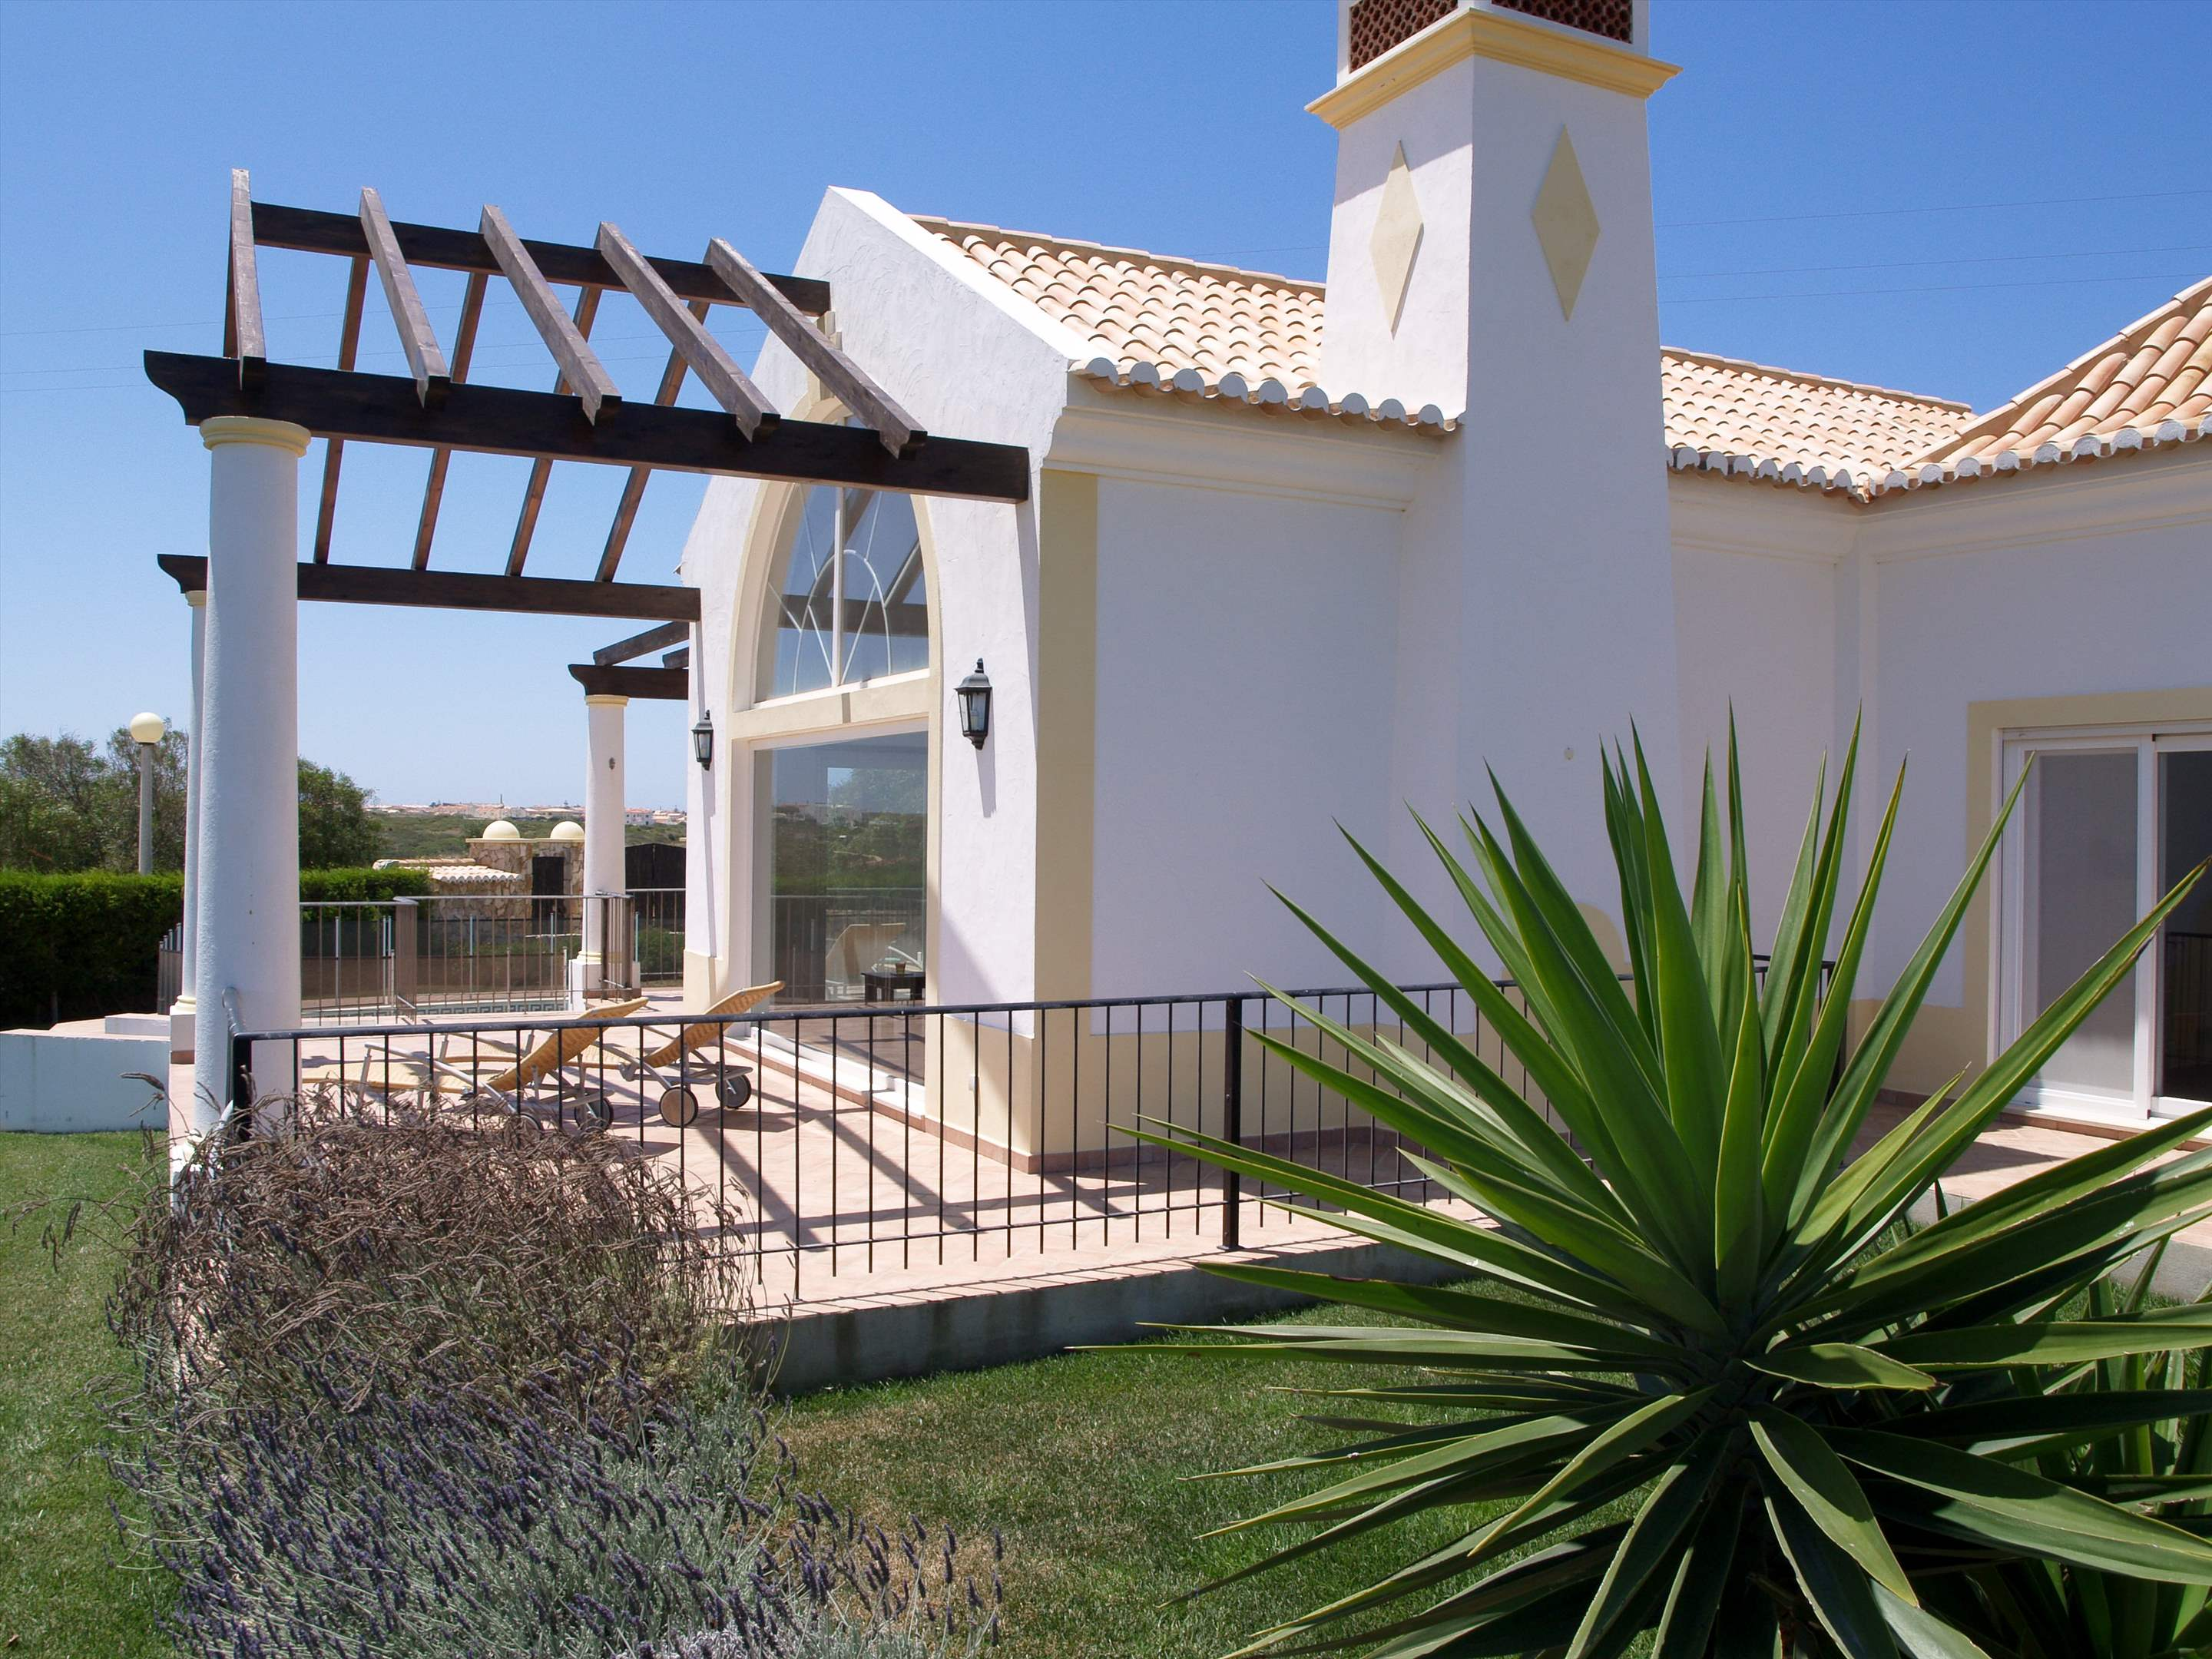 Martinhal Luxury Villa No.8, Three Bedroom Villa, 3 bedroom villa in Martinhal Sagres, Algarve Photo #6